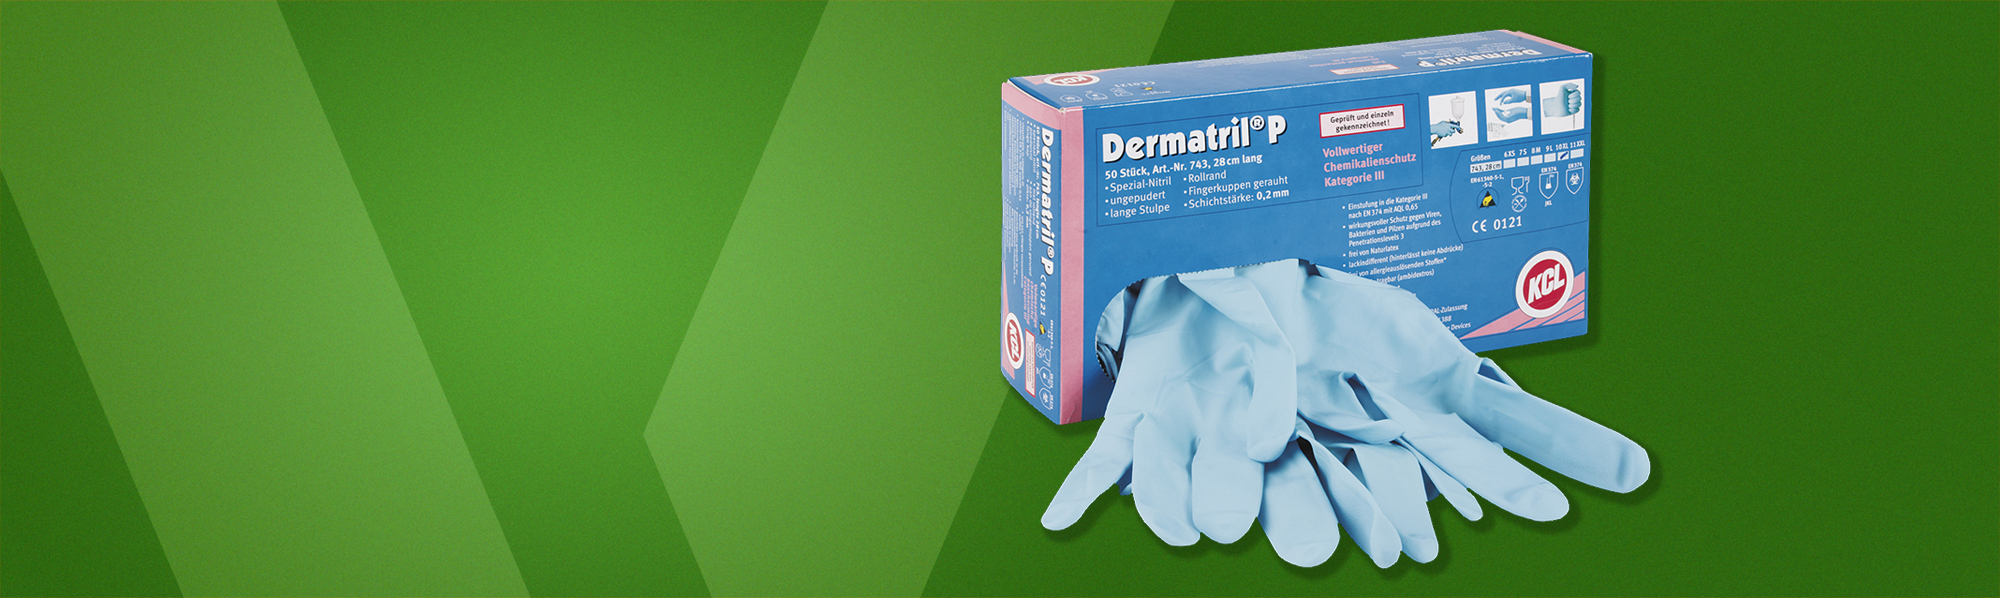 KCL Dermatril P 743, chemical resistant gloves to protect hands against n-Heptane, Sodium hydroxide 40%, and Sulphuric acid 96%.